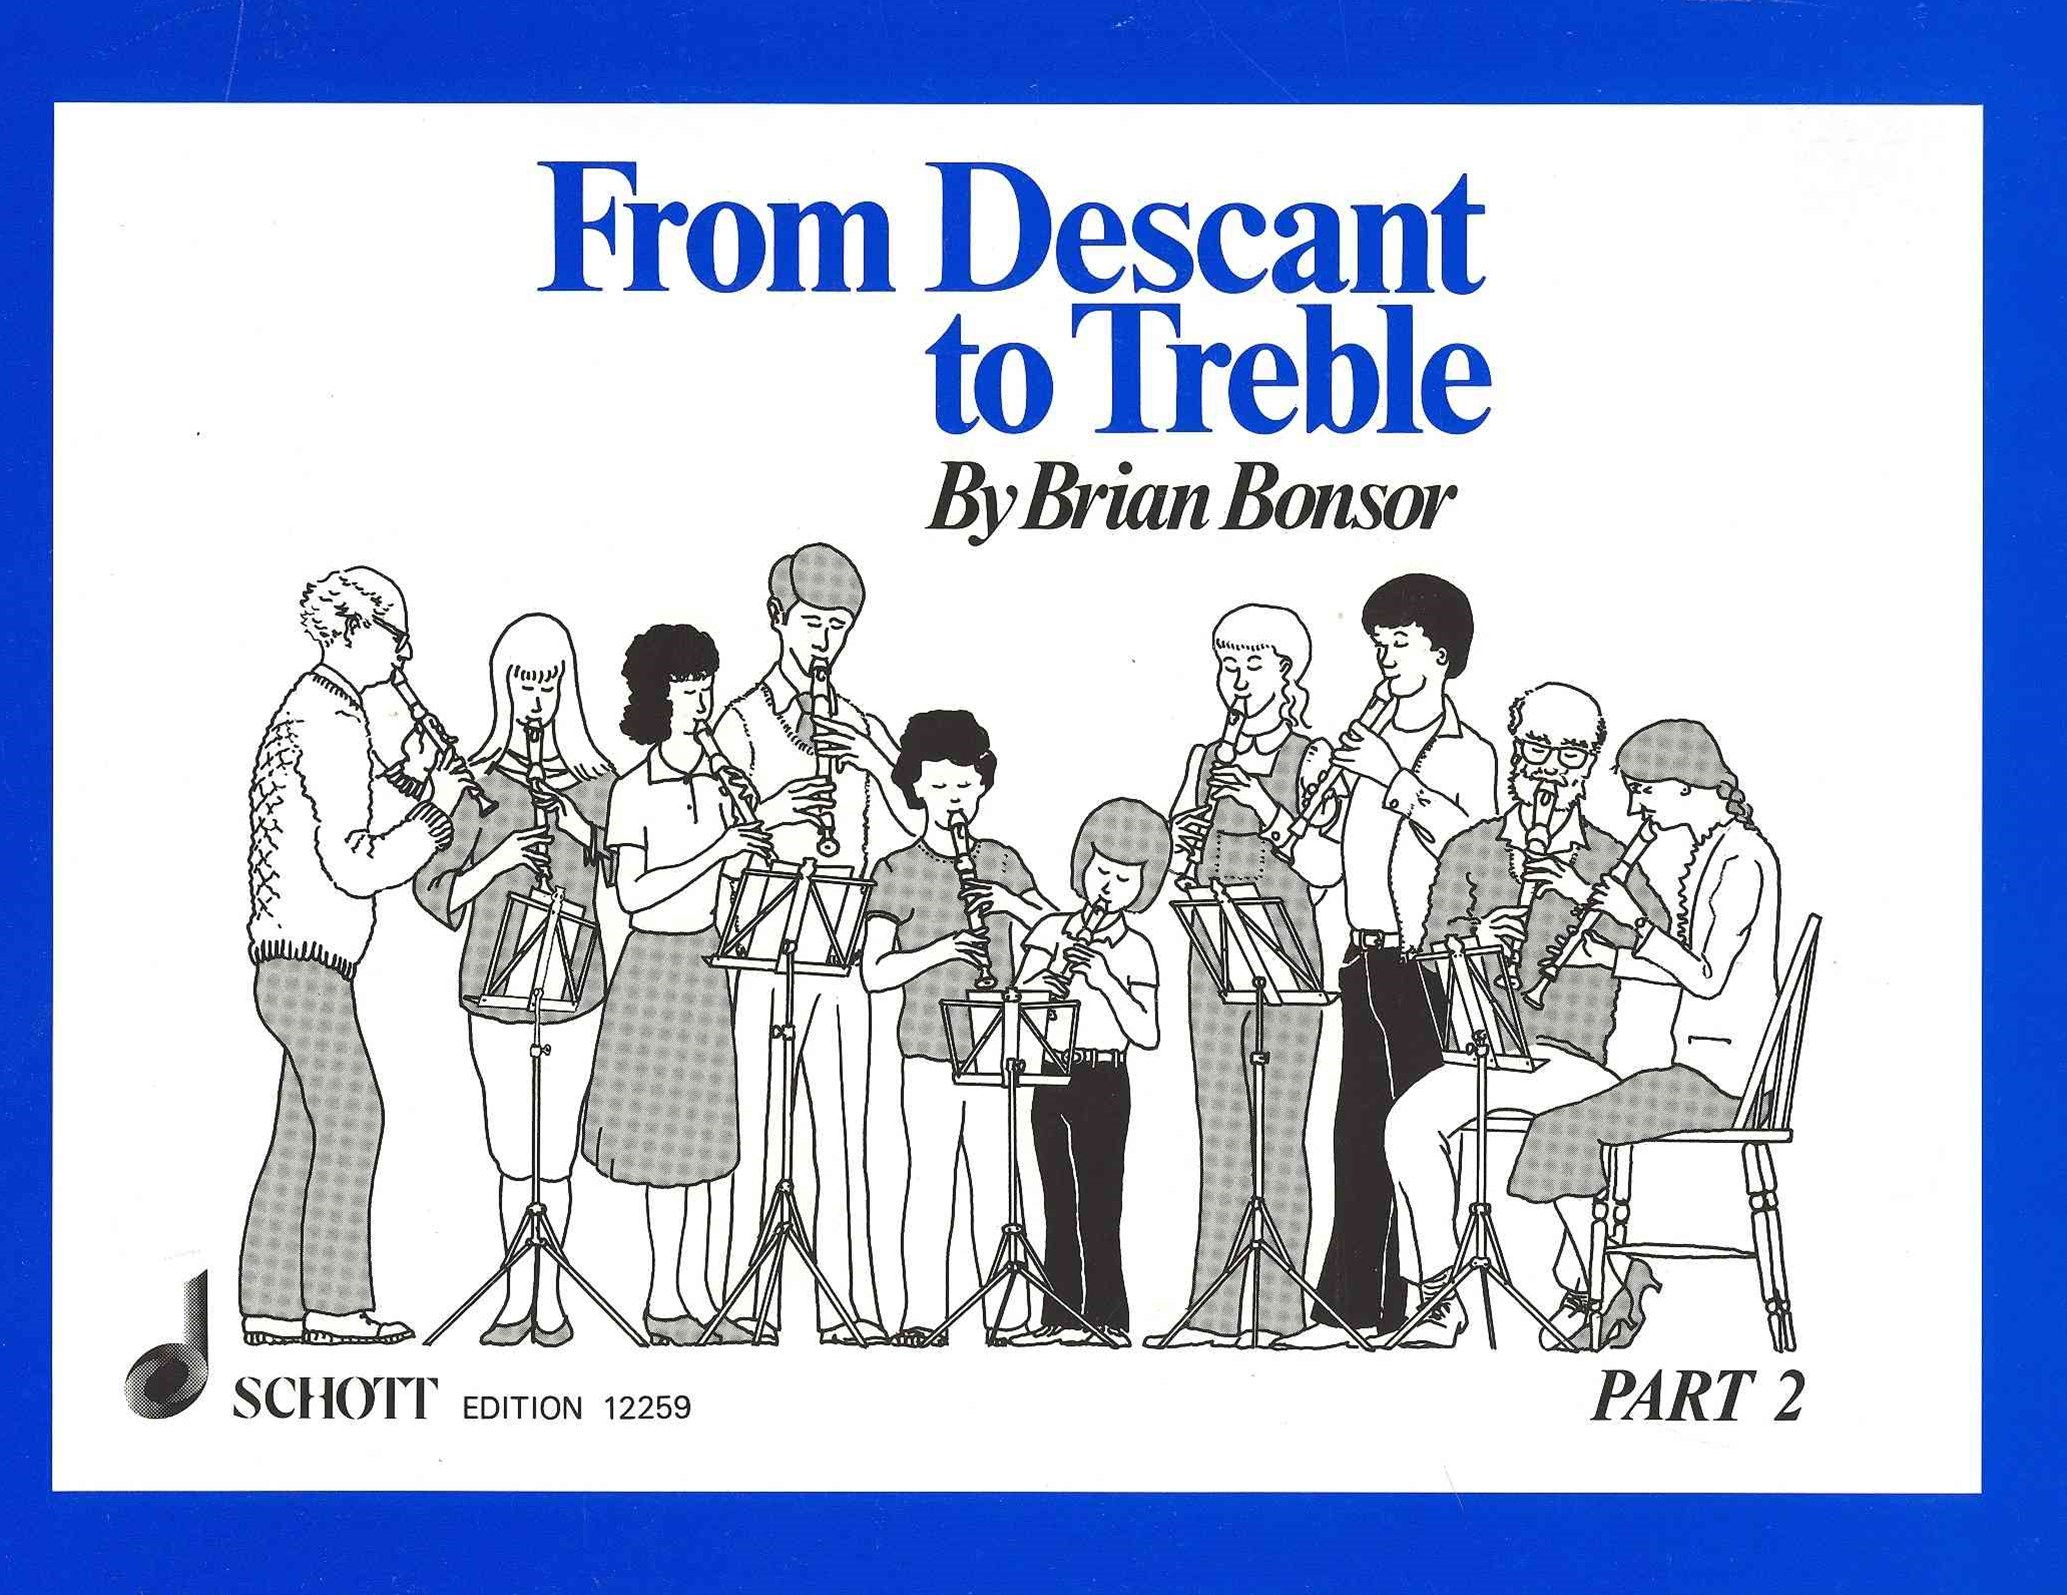 From Descant to Treble - Part 2